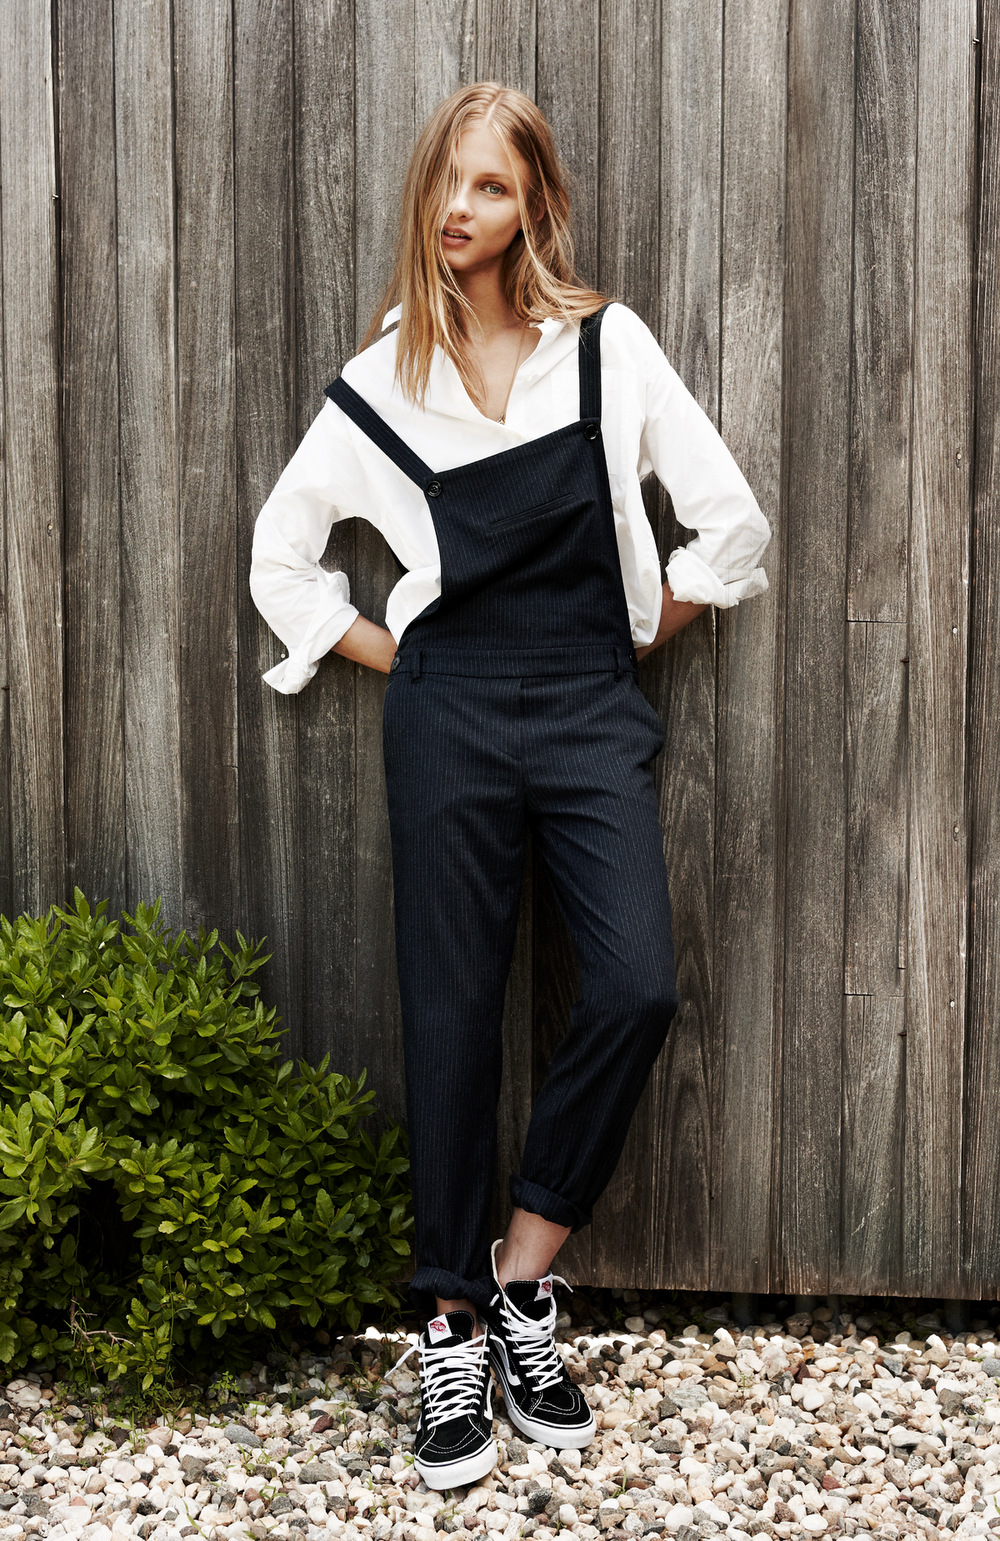 anna-selezneva-for-madewell-september-2014-catalog-4